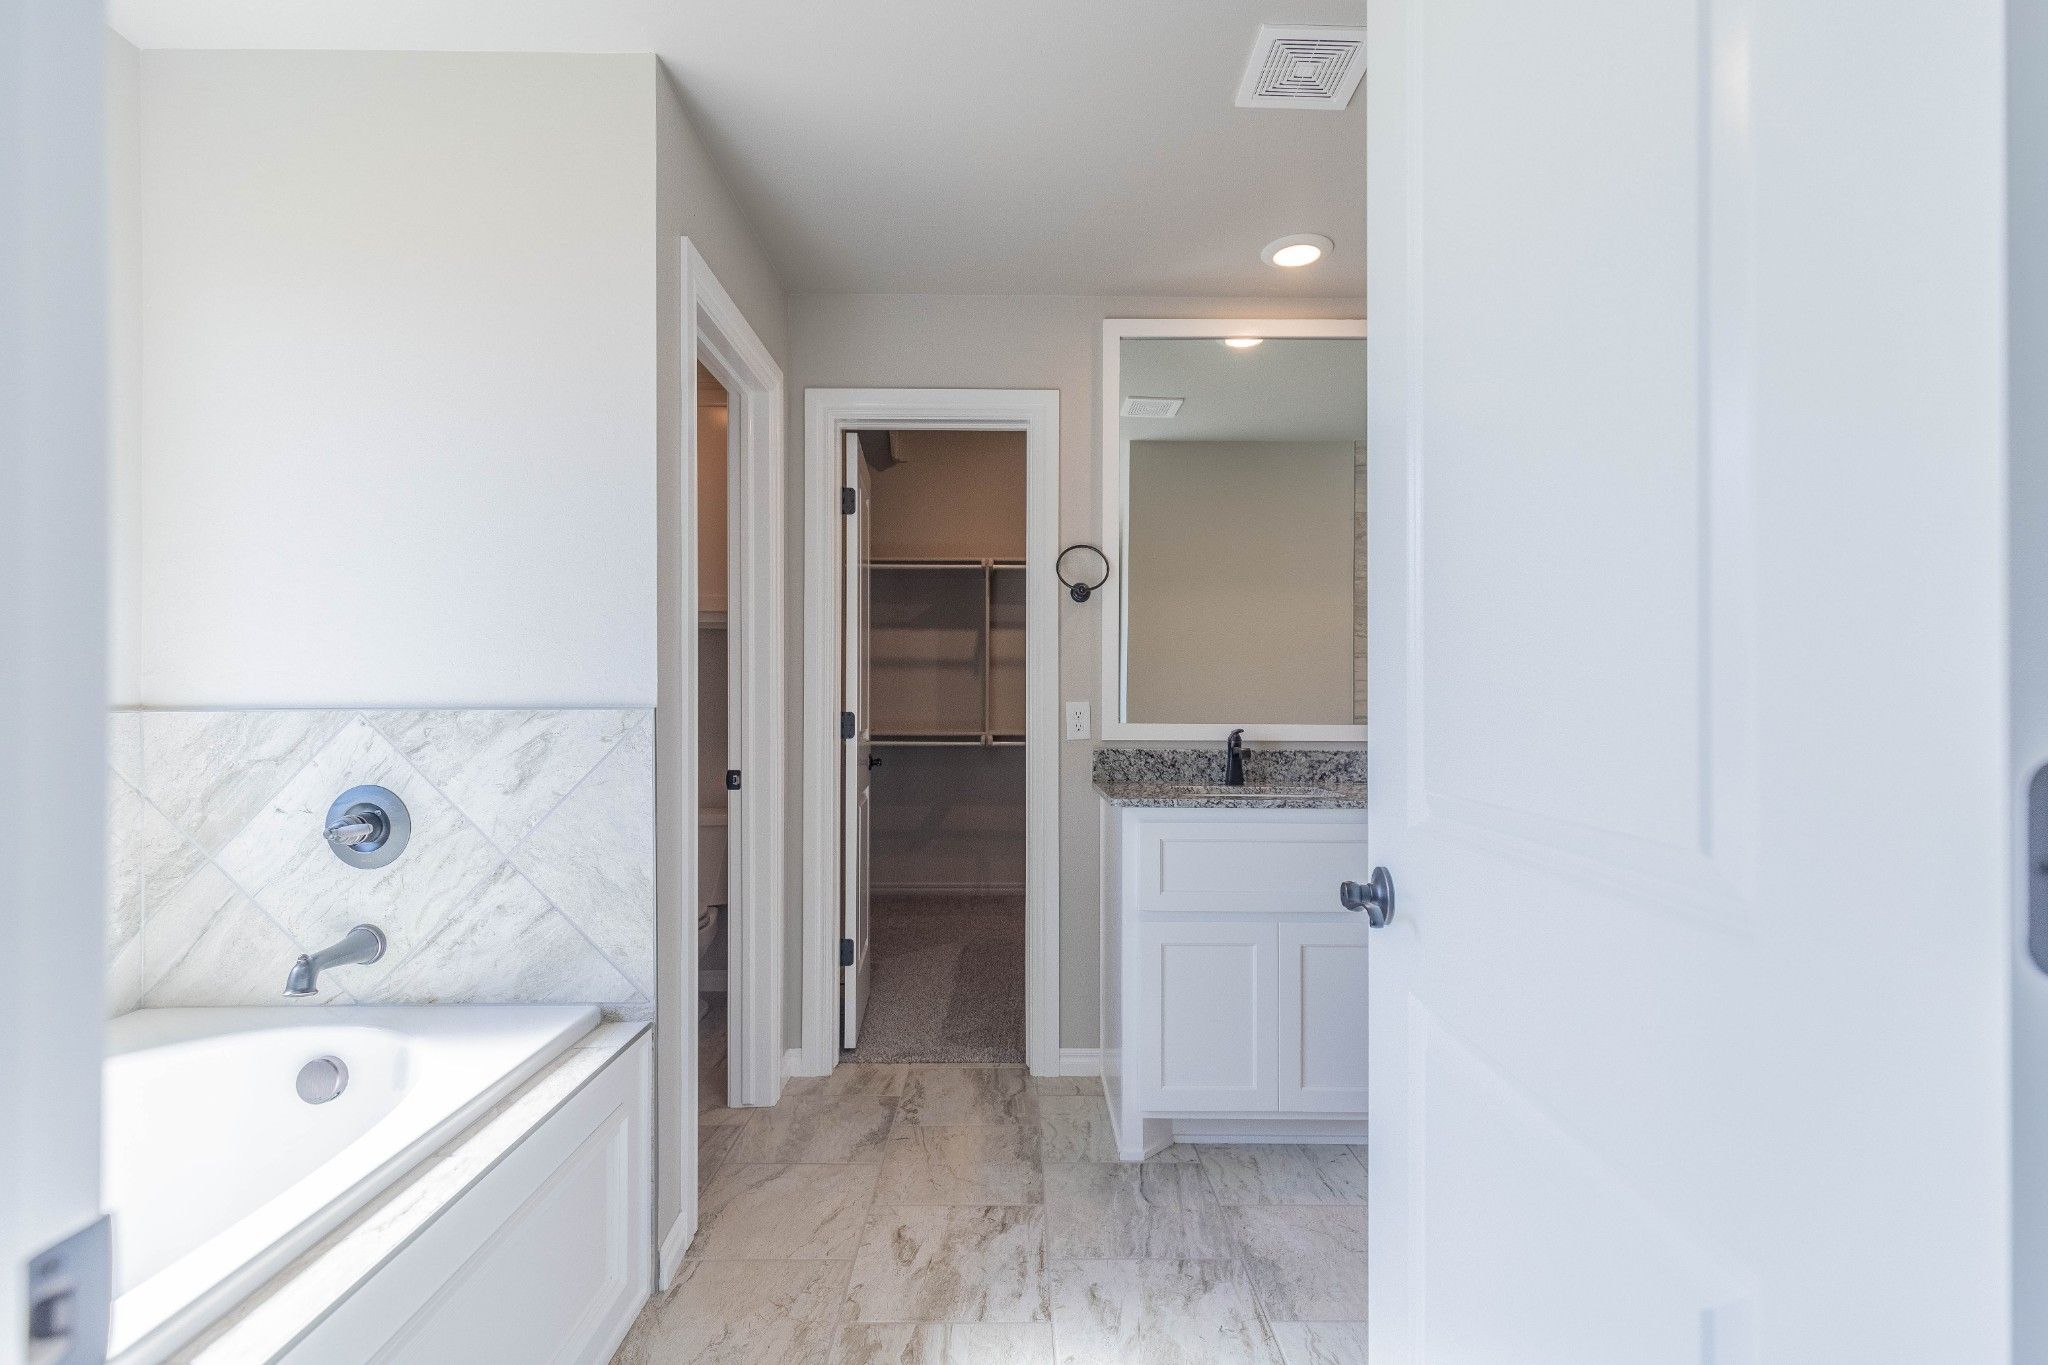 Bathroom featured in the Hazel By Homes By Taber in Oklahoma City, OK